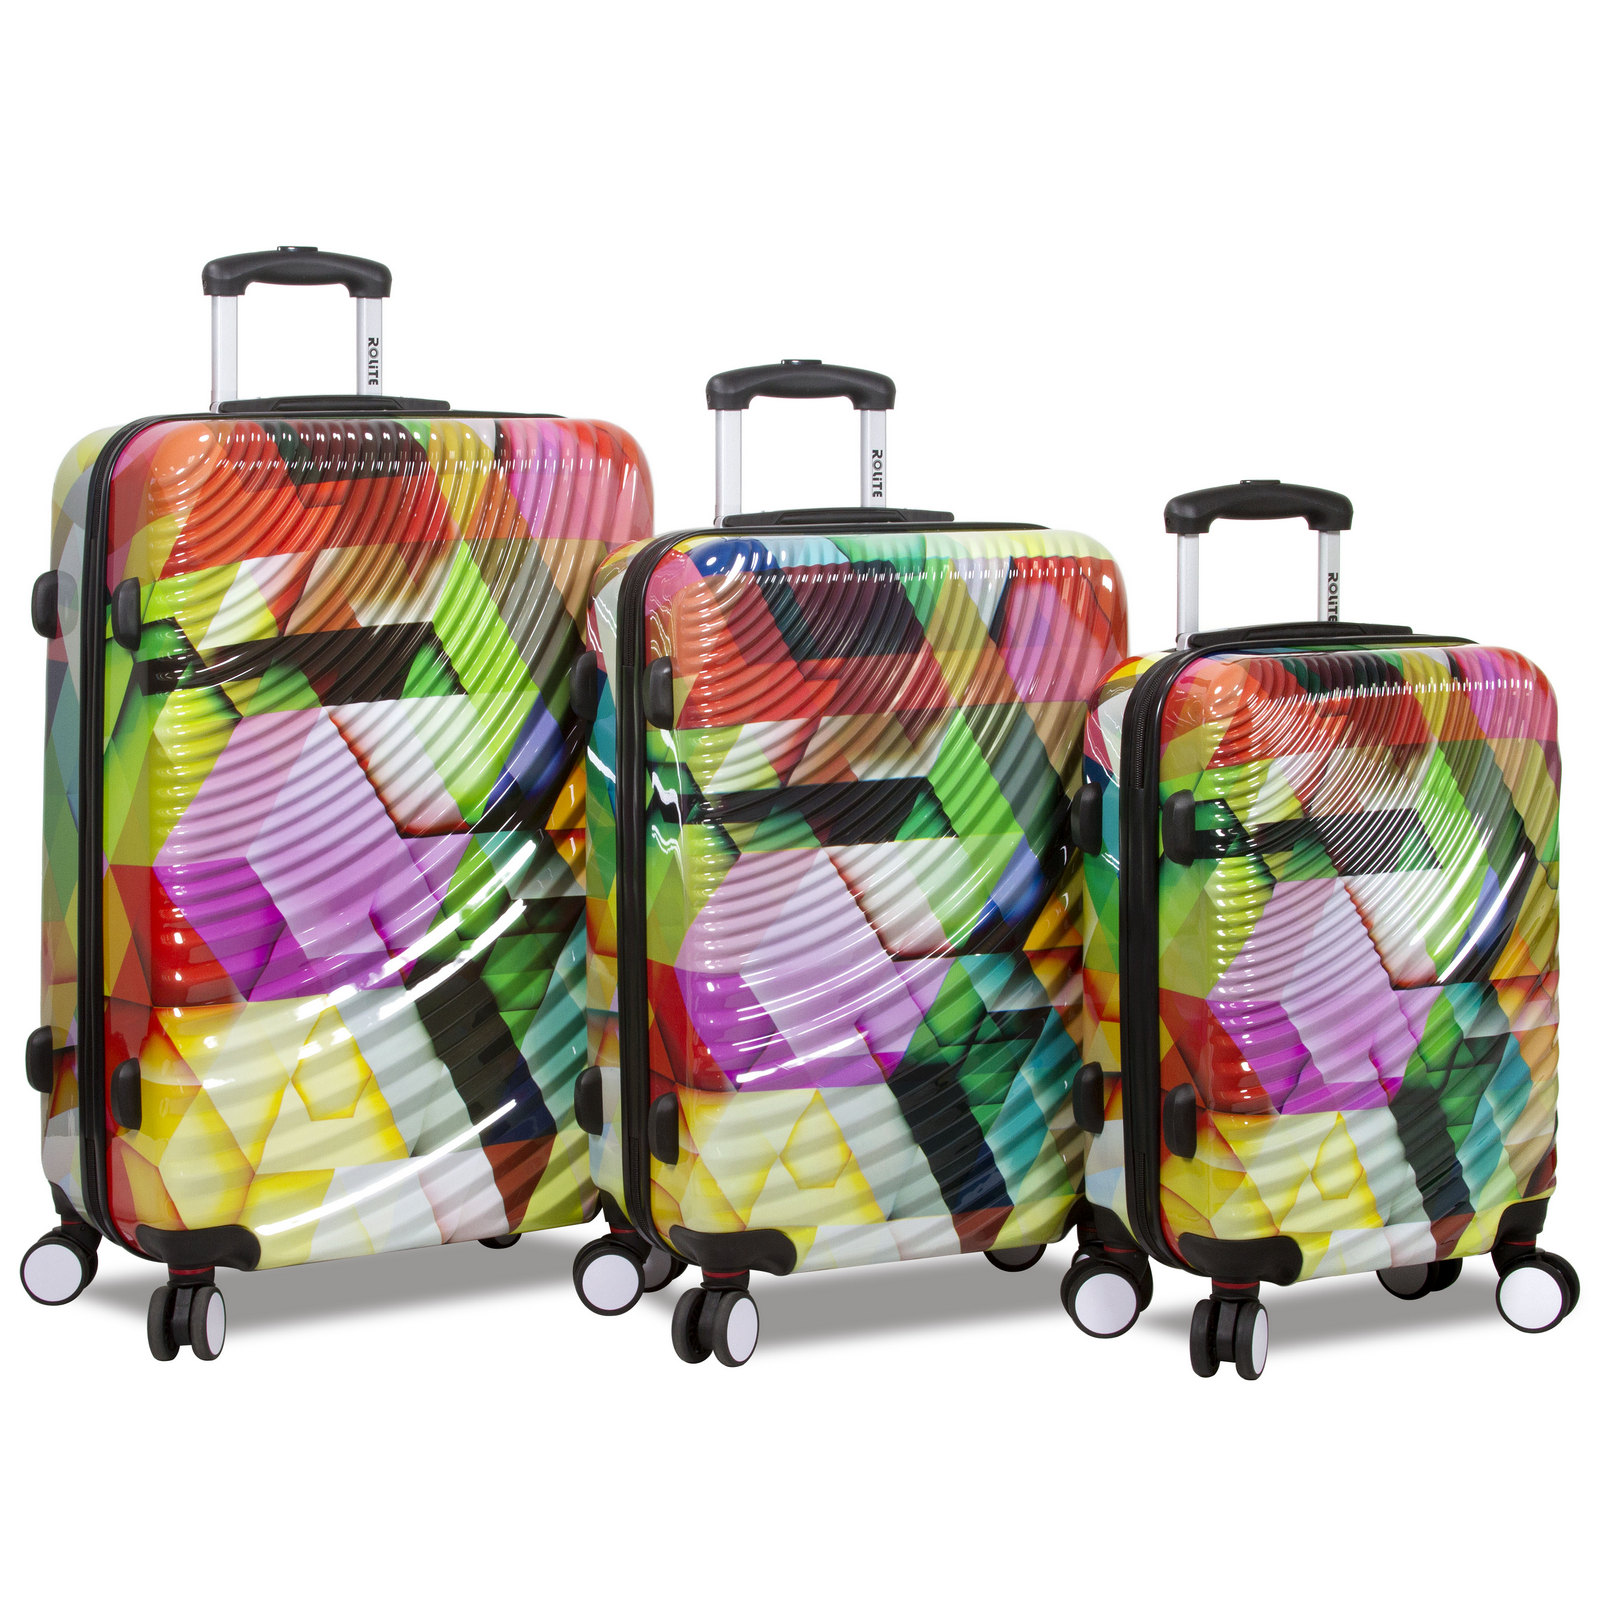 Rolite Ripple 3-Piece Lightweight Spinner Luggage Set